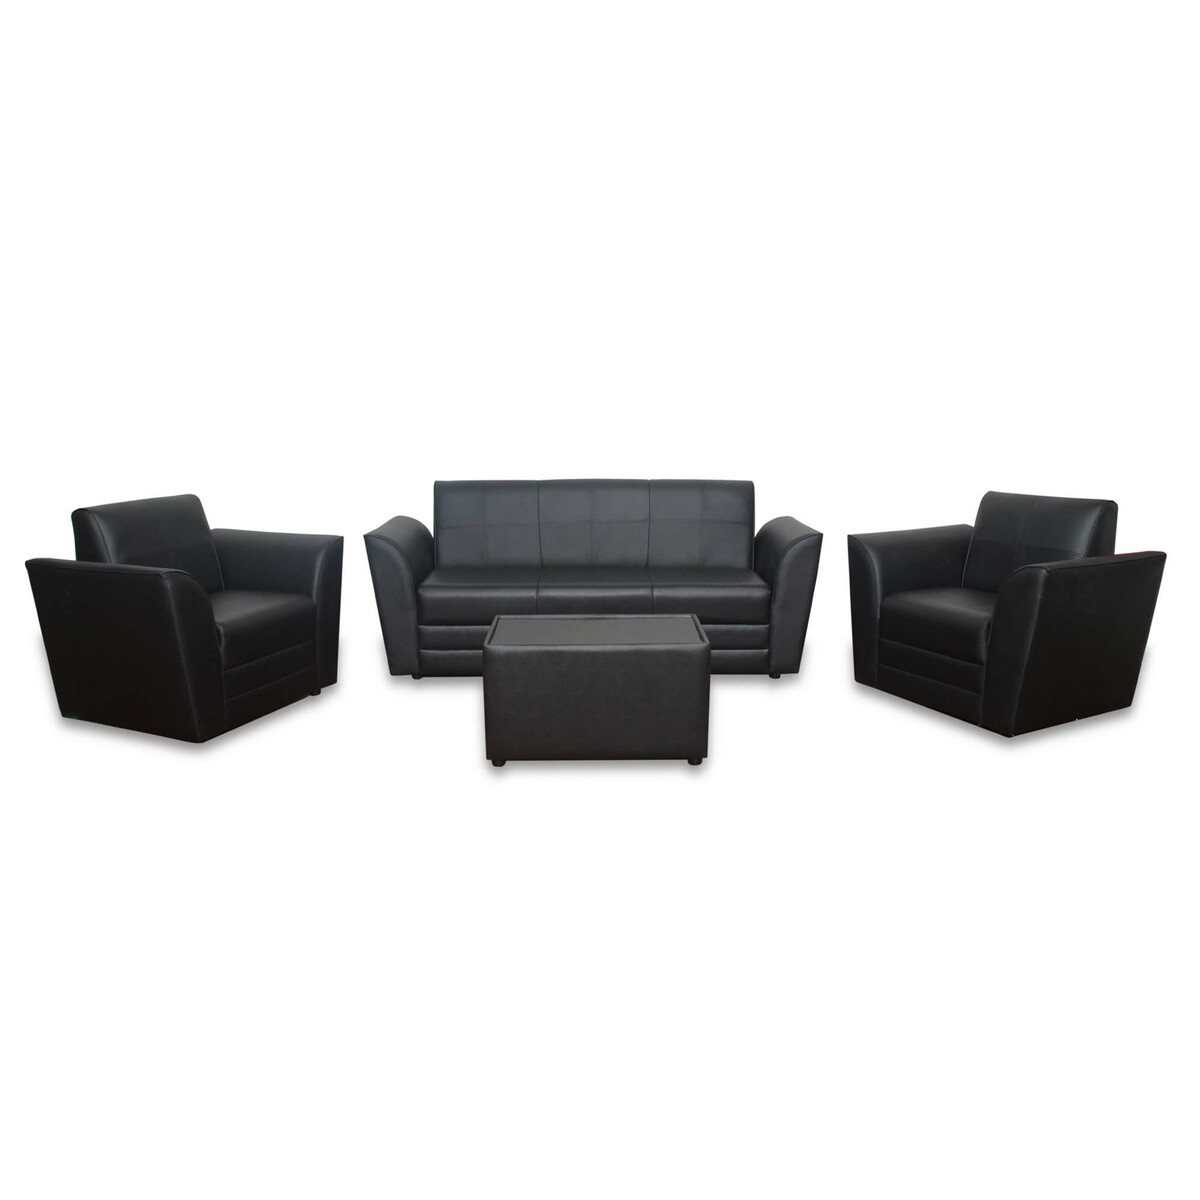 Design Plus PVC Sofa Set 5 Seater (3+1+1) SPR03 Black